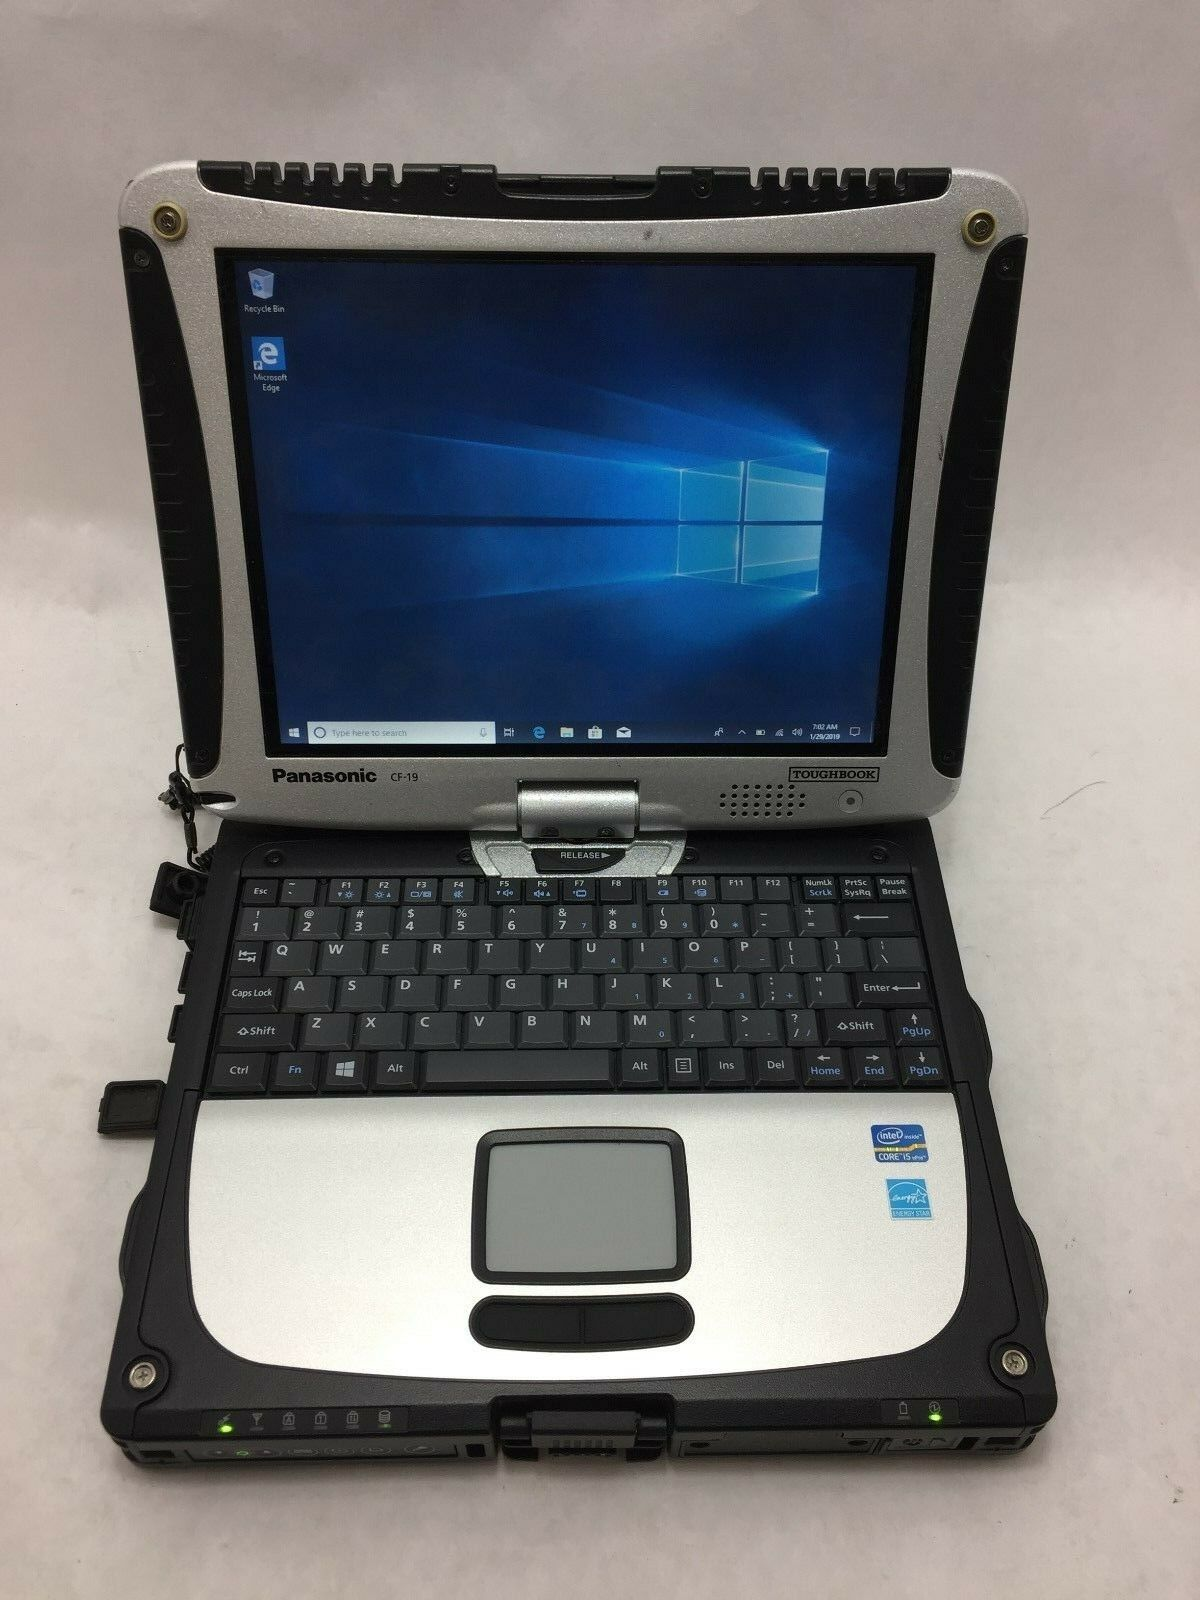 Pansonic Toughbook CF-19 Intel Core i5-3340M 2.7GHz 8GB RAM 128GB SSD (j-4-2) A